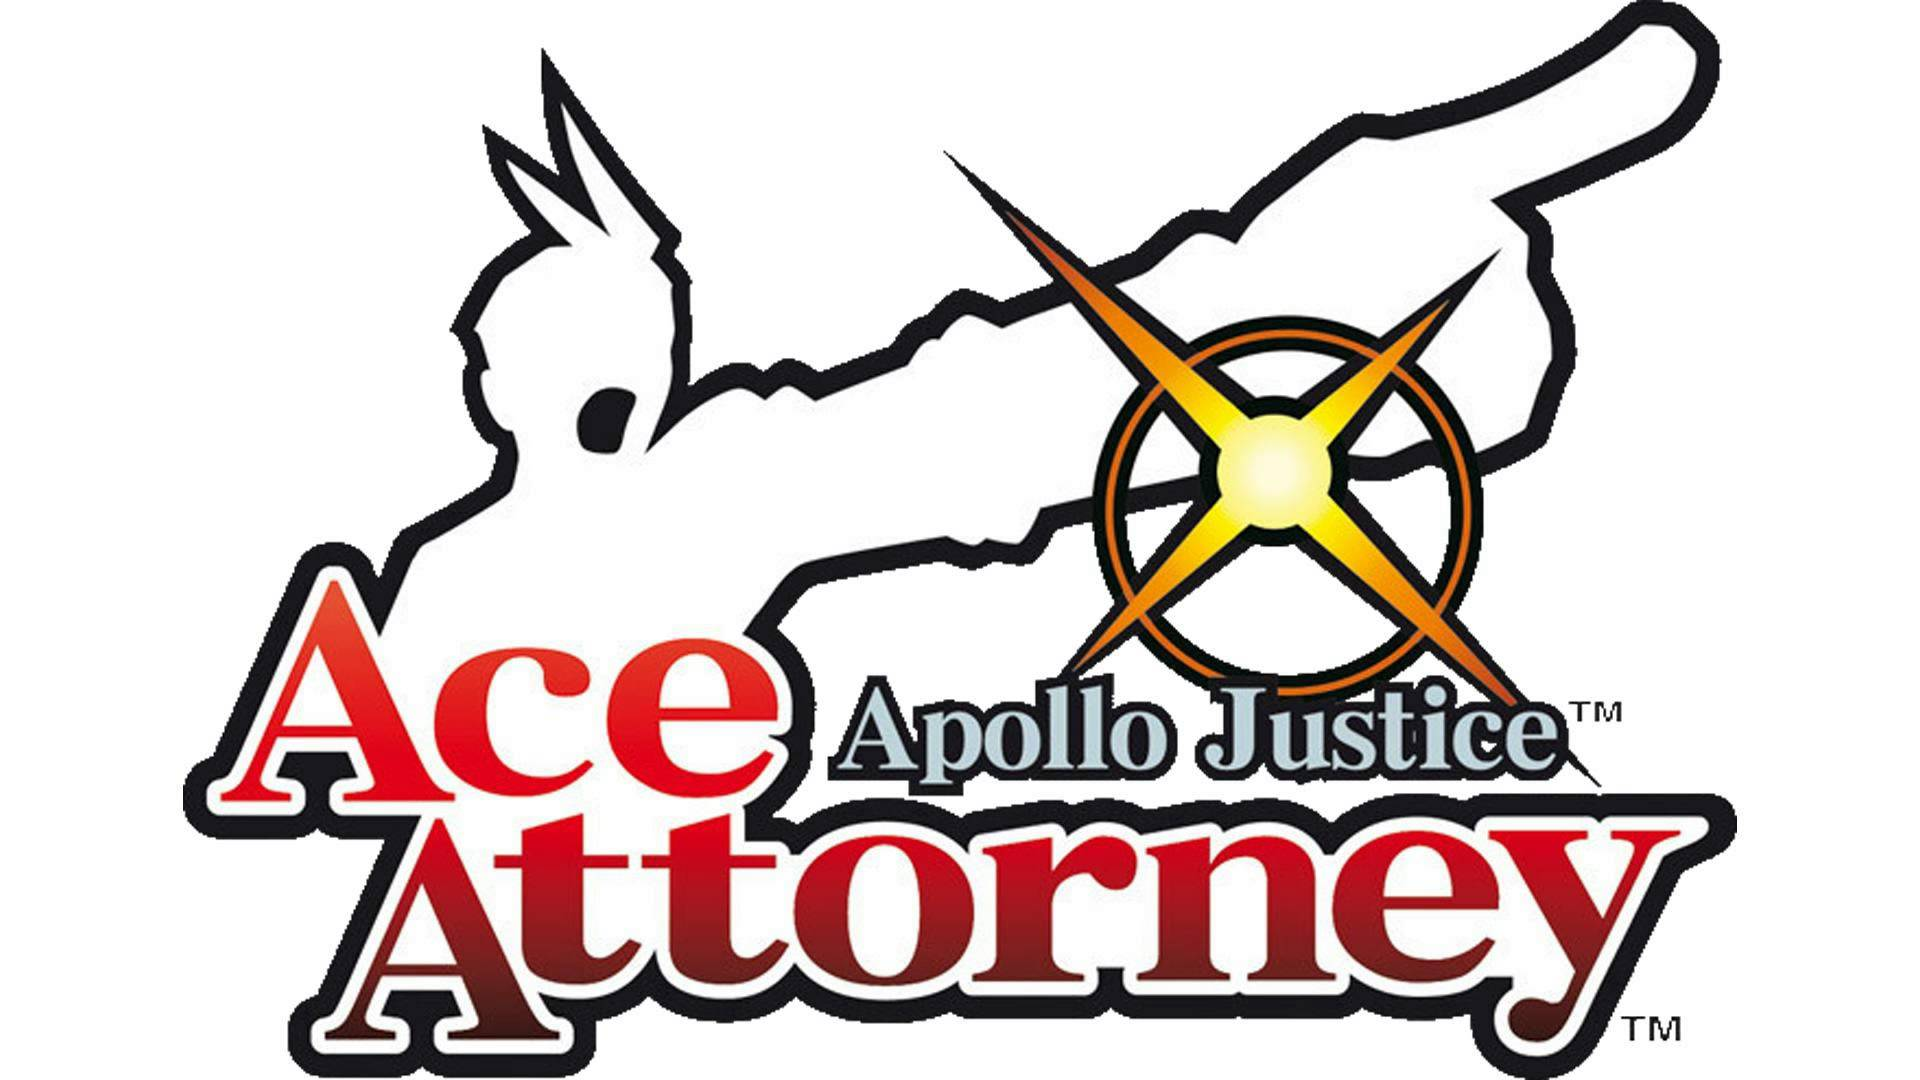 Modojo | Apollo Justice: Ace Attorney is Heading to Smartphones